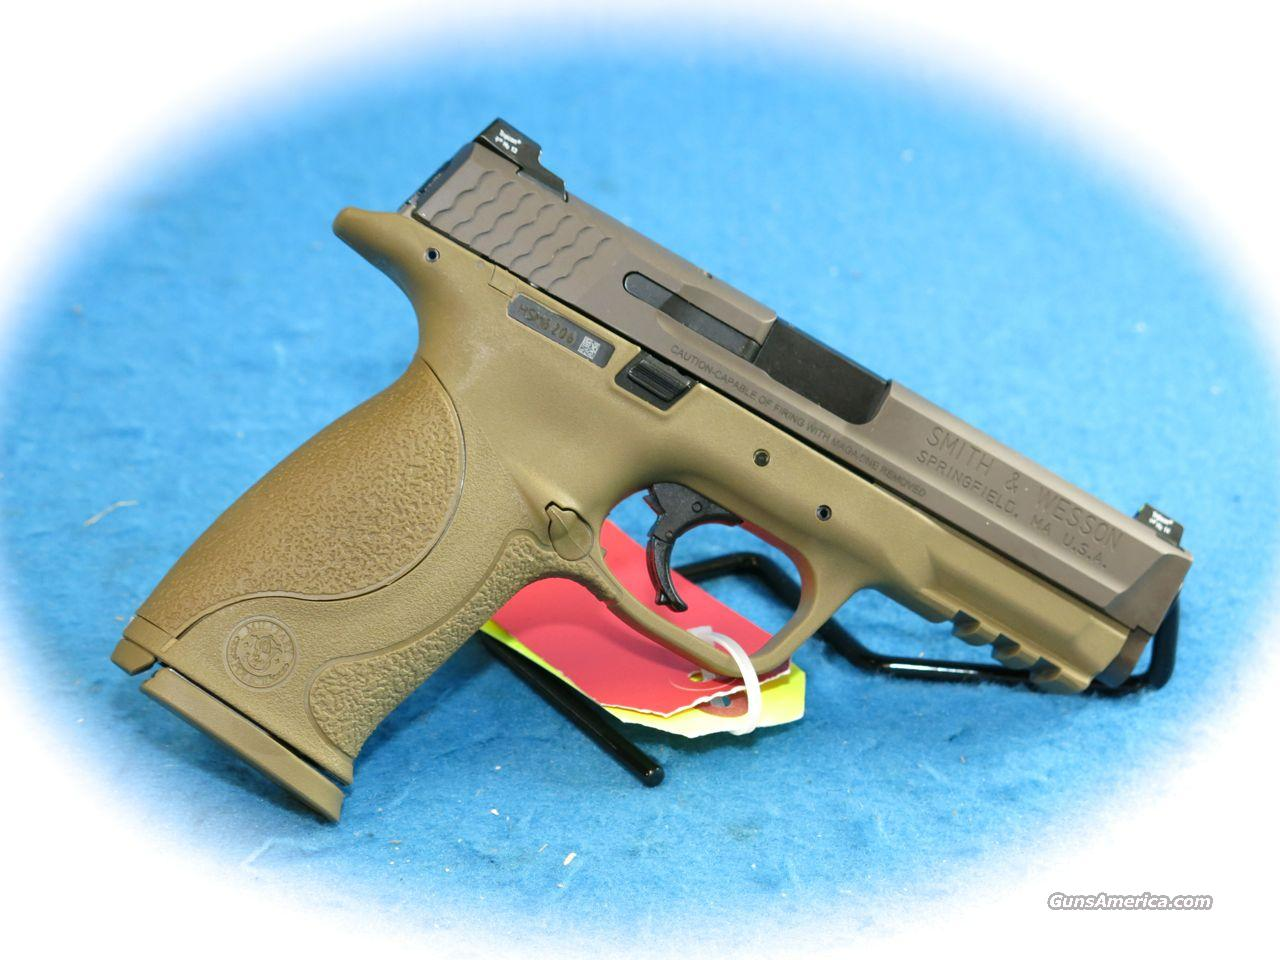 Smith & Wesson M&P40 VTAC Viking Tactics .40 S&W Pistol FDE **New**  Guns > Pistols > Smith & Wesson Pistols - Autos > Polymer Frame